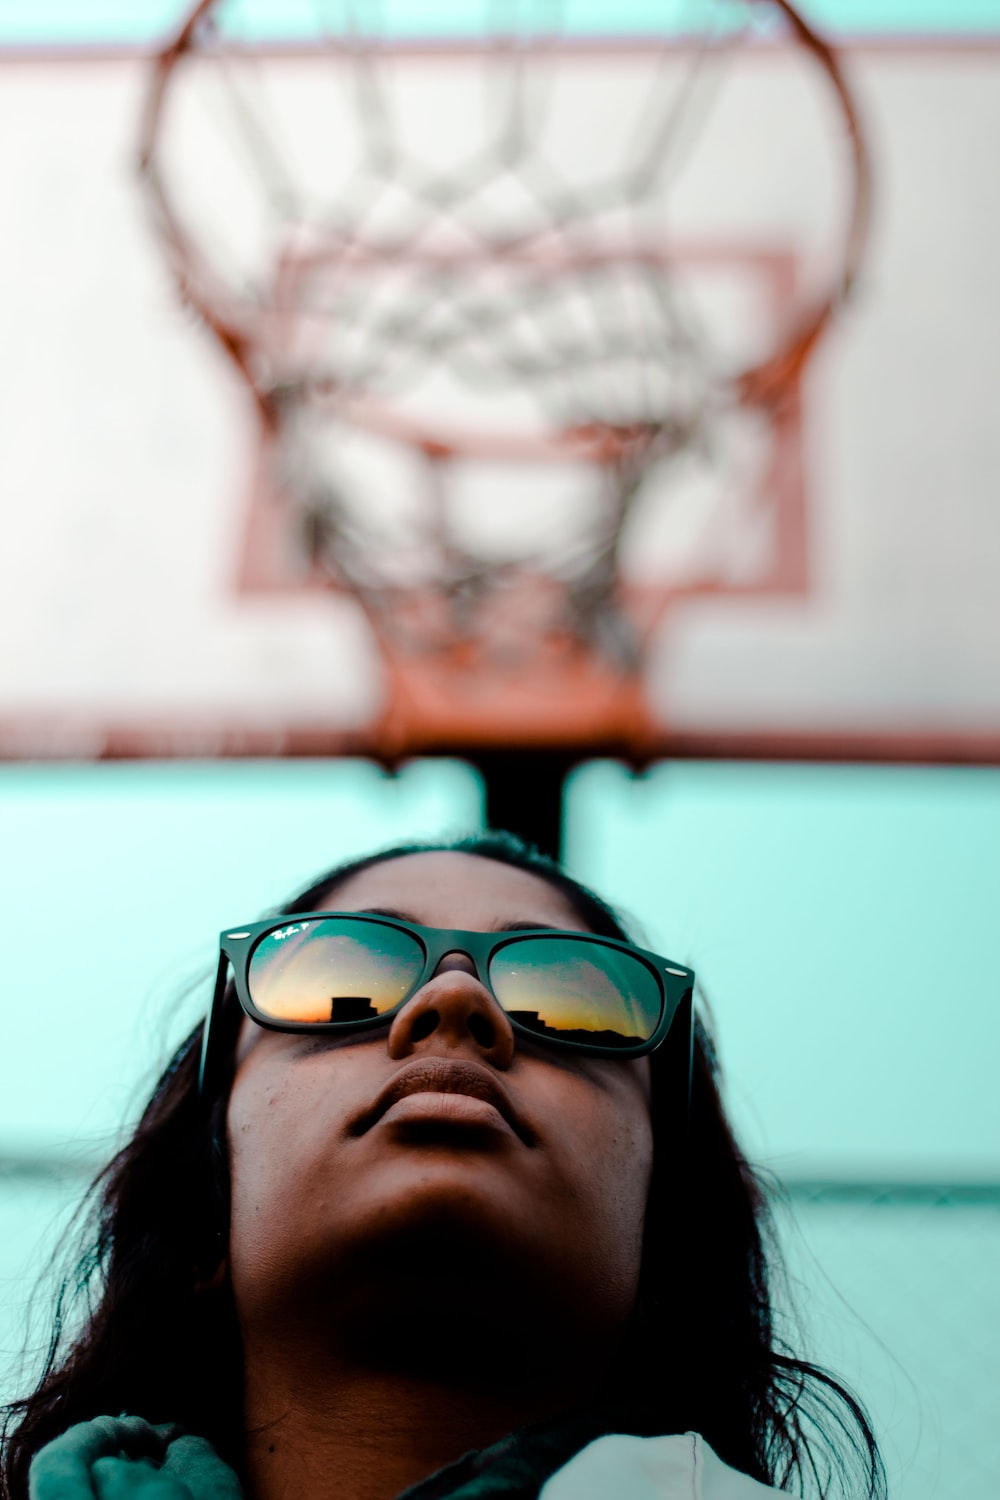 person wearing black Ray-Ban Wayfarer sunglasses with black frames in worm's eyeview photography during daytime